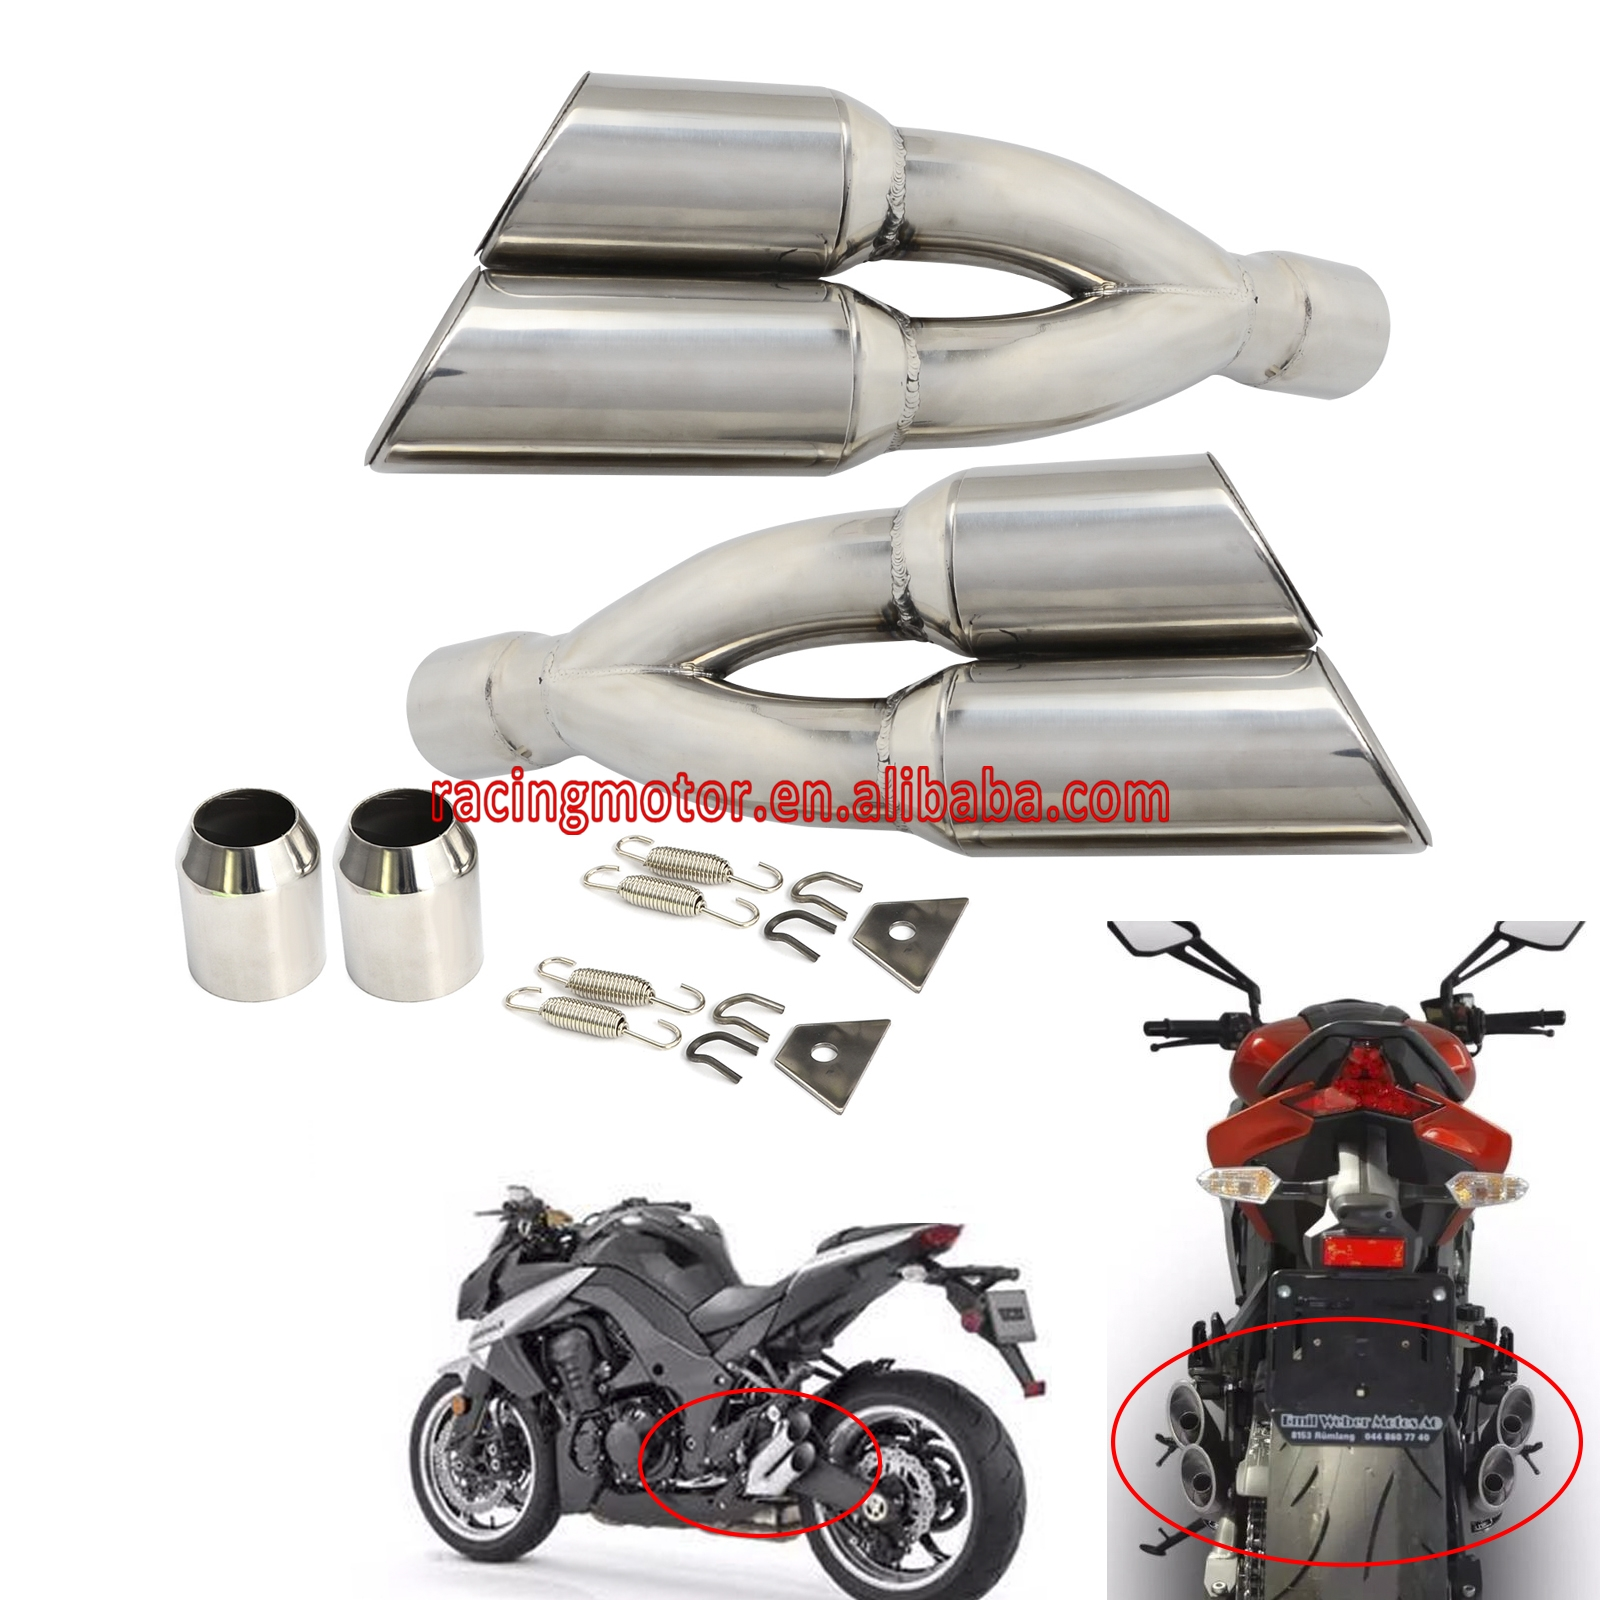 Street Bike Quad: 38 51MM Slip On Universal Dual Exhaust Muffler Vent Pipe